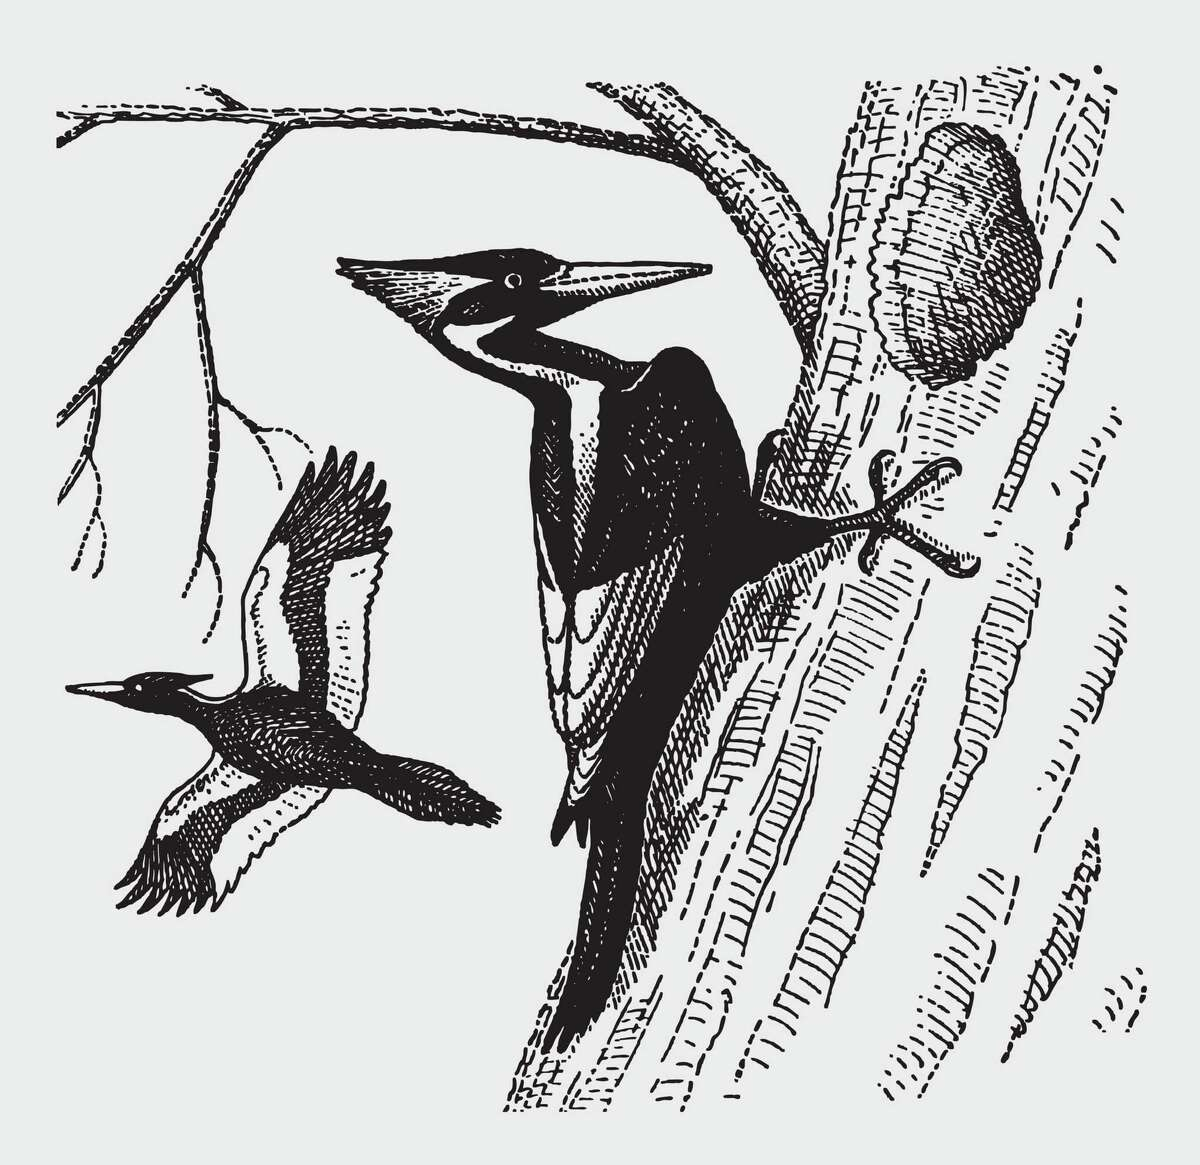 An extinct ivory-billed woodpecker excavating a hole in a tree trunk in an illustration patterned after an engraving from the early 20th century. (Dreamstime/TNS)